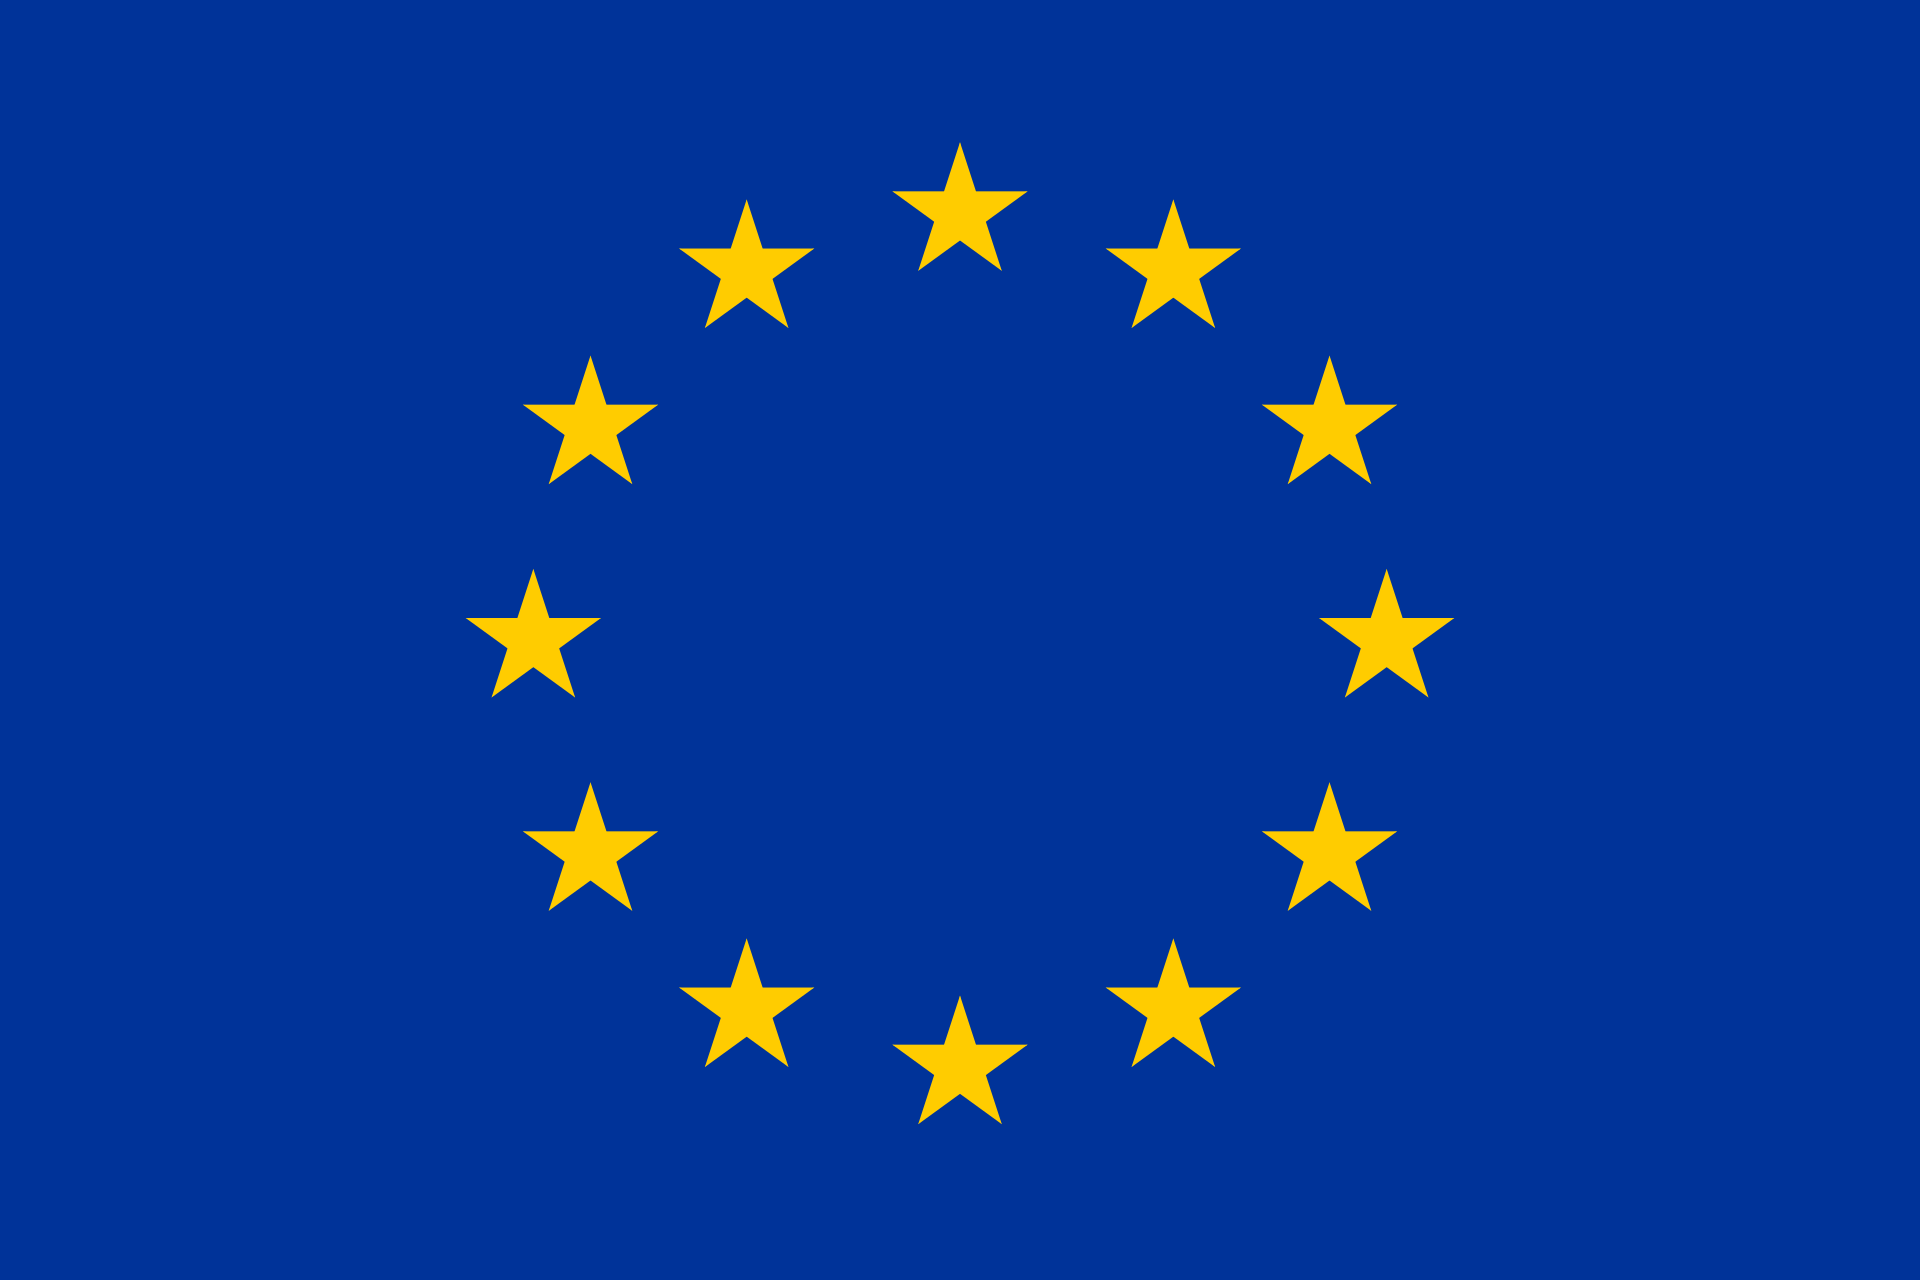 EU citizen in the UK? Apply for settled or pre-settled status now